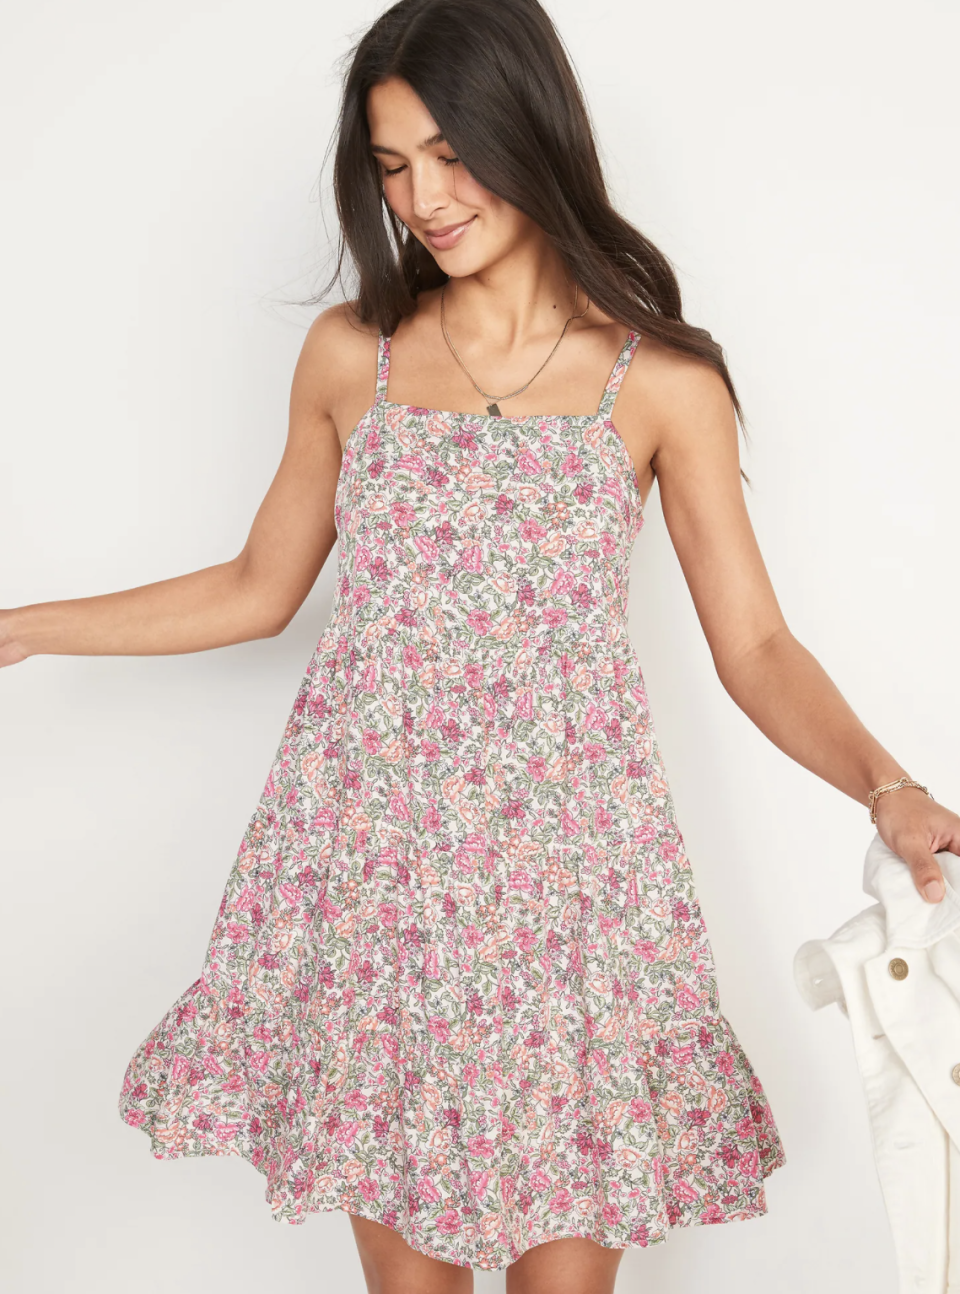 Sleeveless Tiered Floral-Print Swing Dress for Women - Old Navy